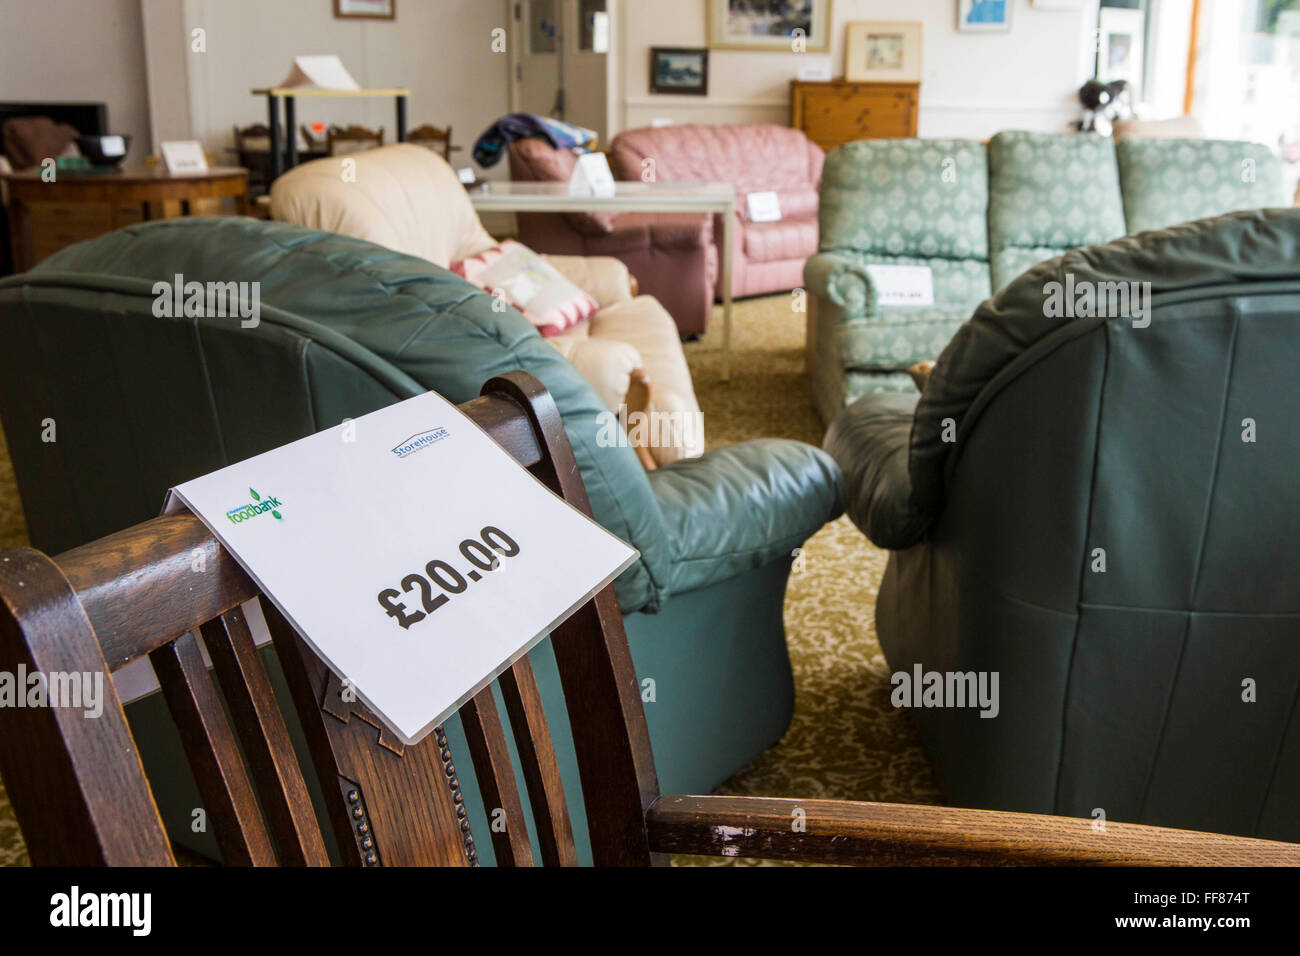 Picture of: Furniture For Sale In The Storehouse Second Hand Charity Shop In Stock Photo Alamy